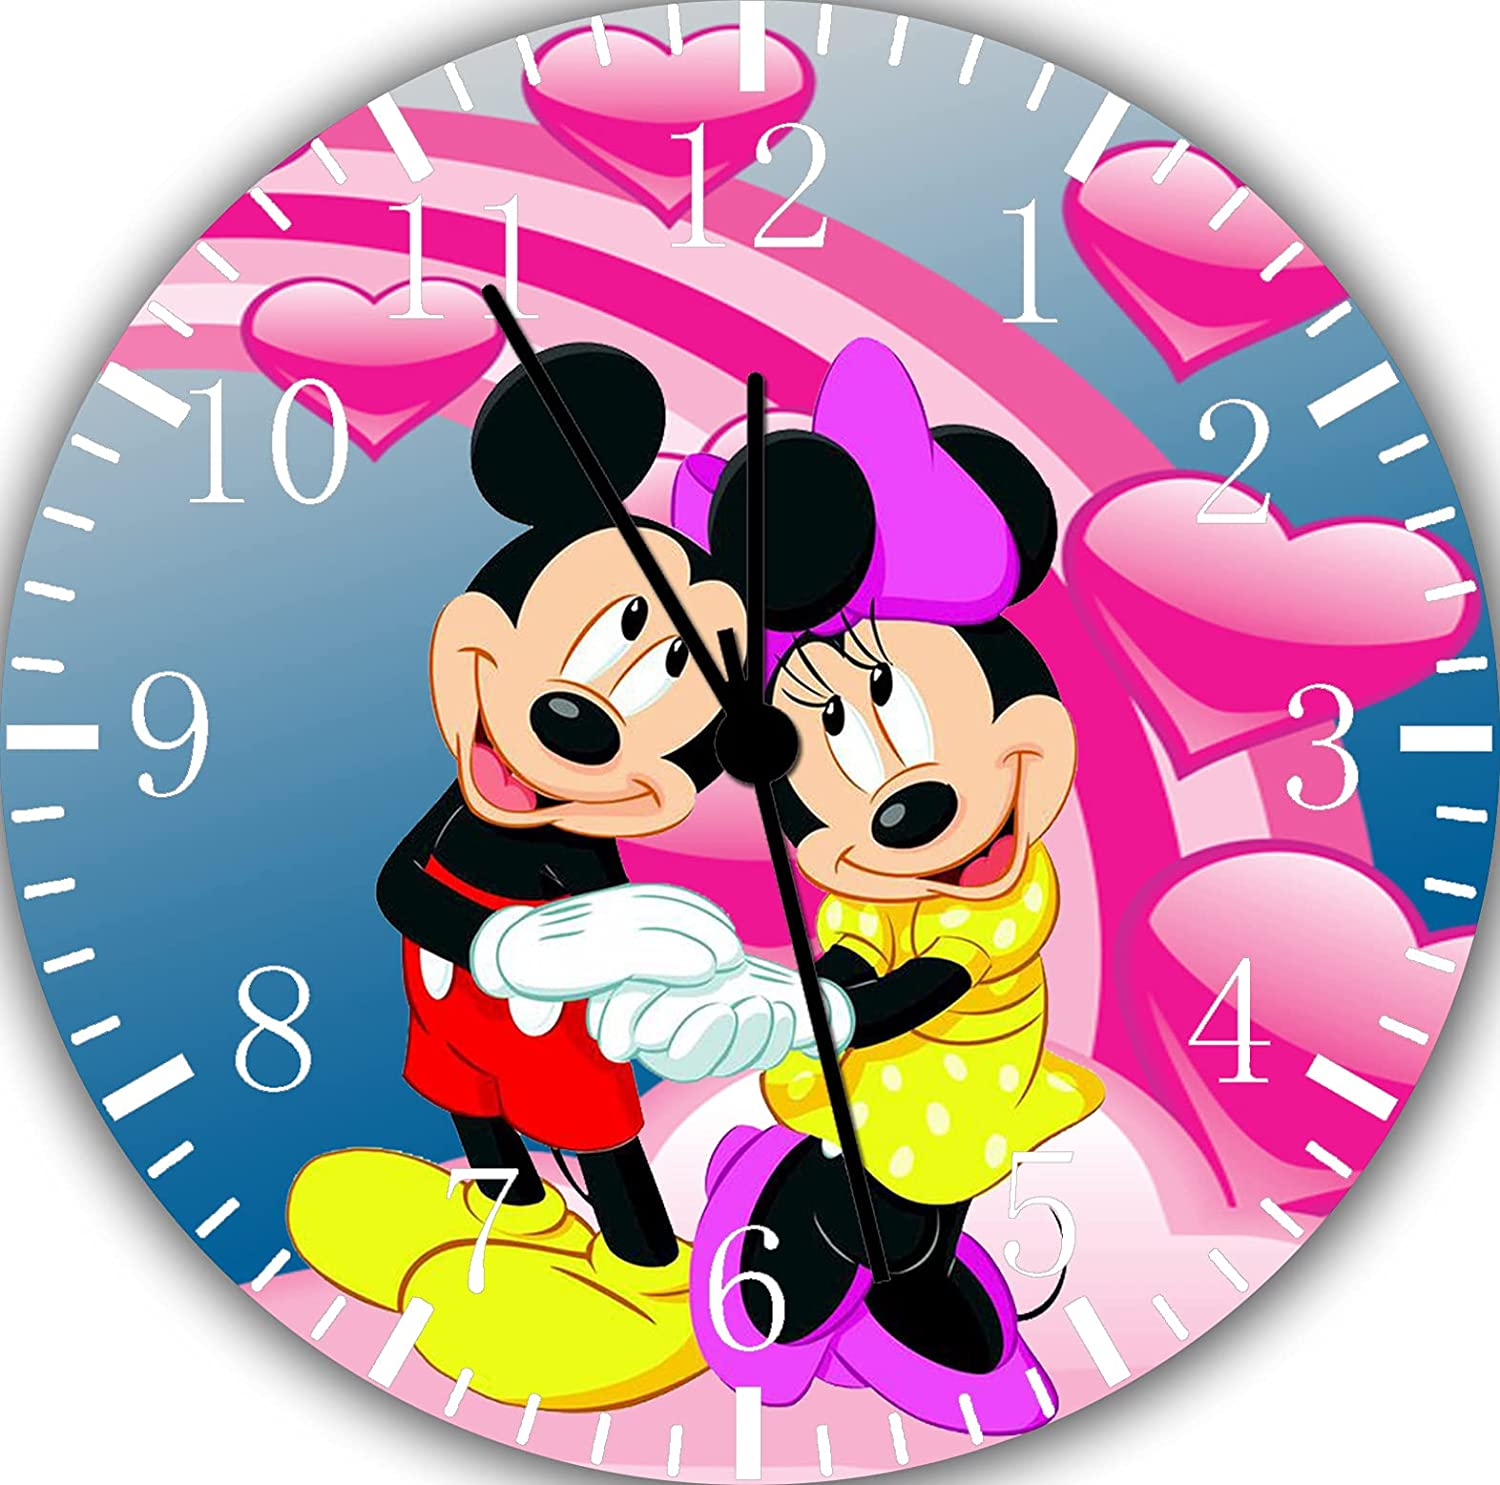 Mickey Mouse Minnie Mouse Wall Clock Silent Non-Ticking Nice for